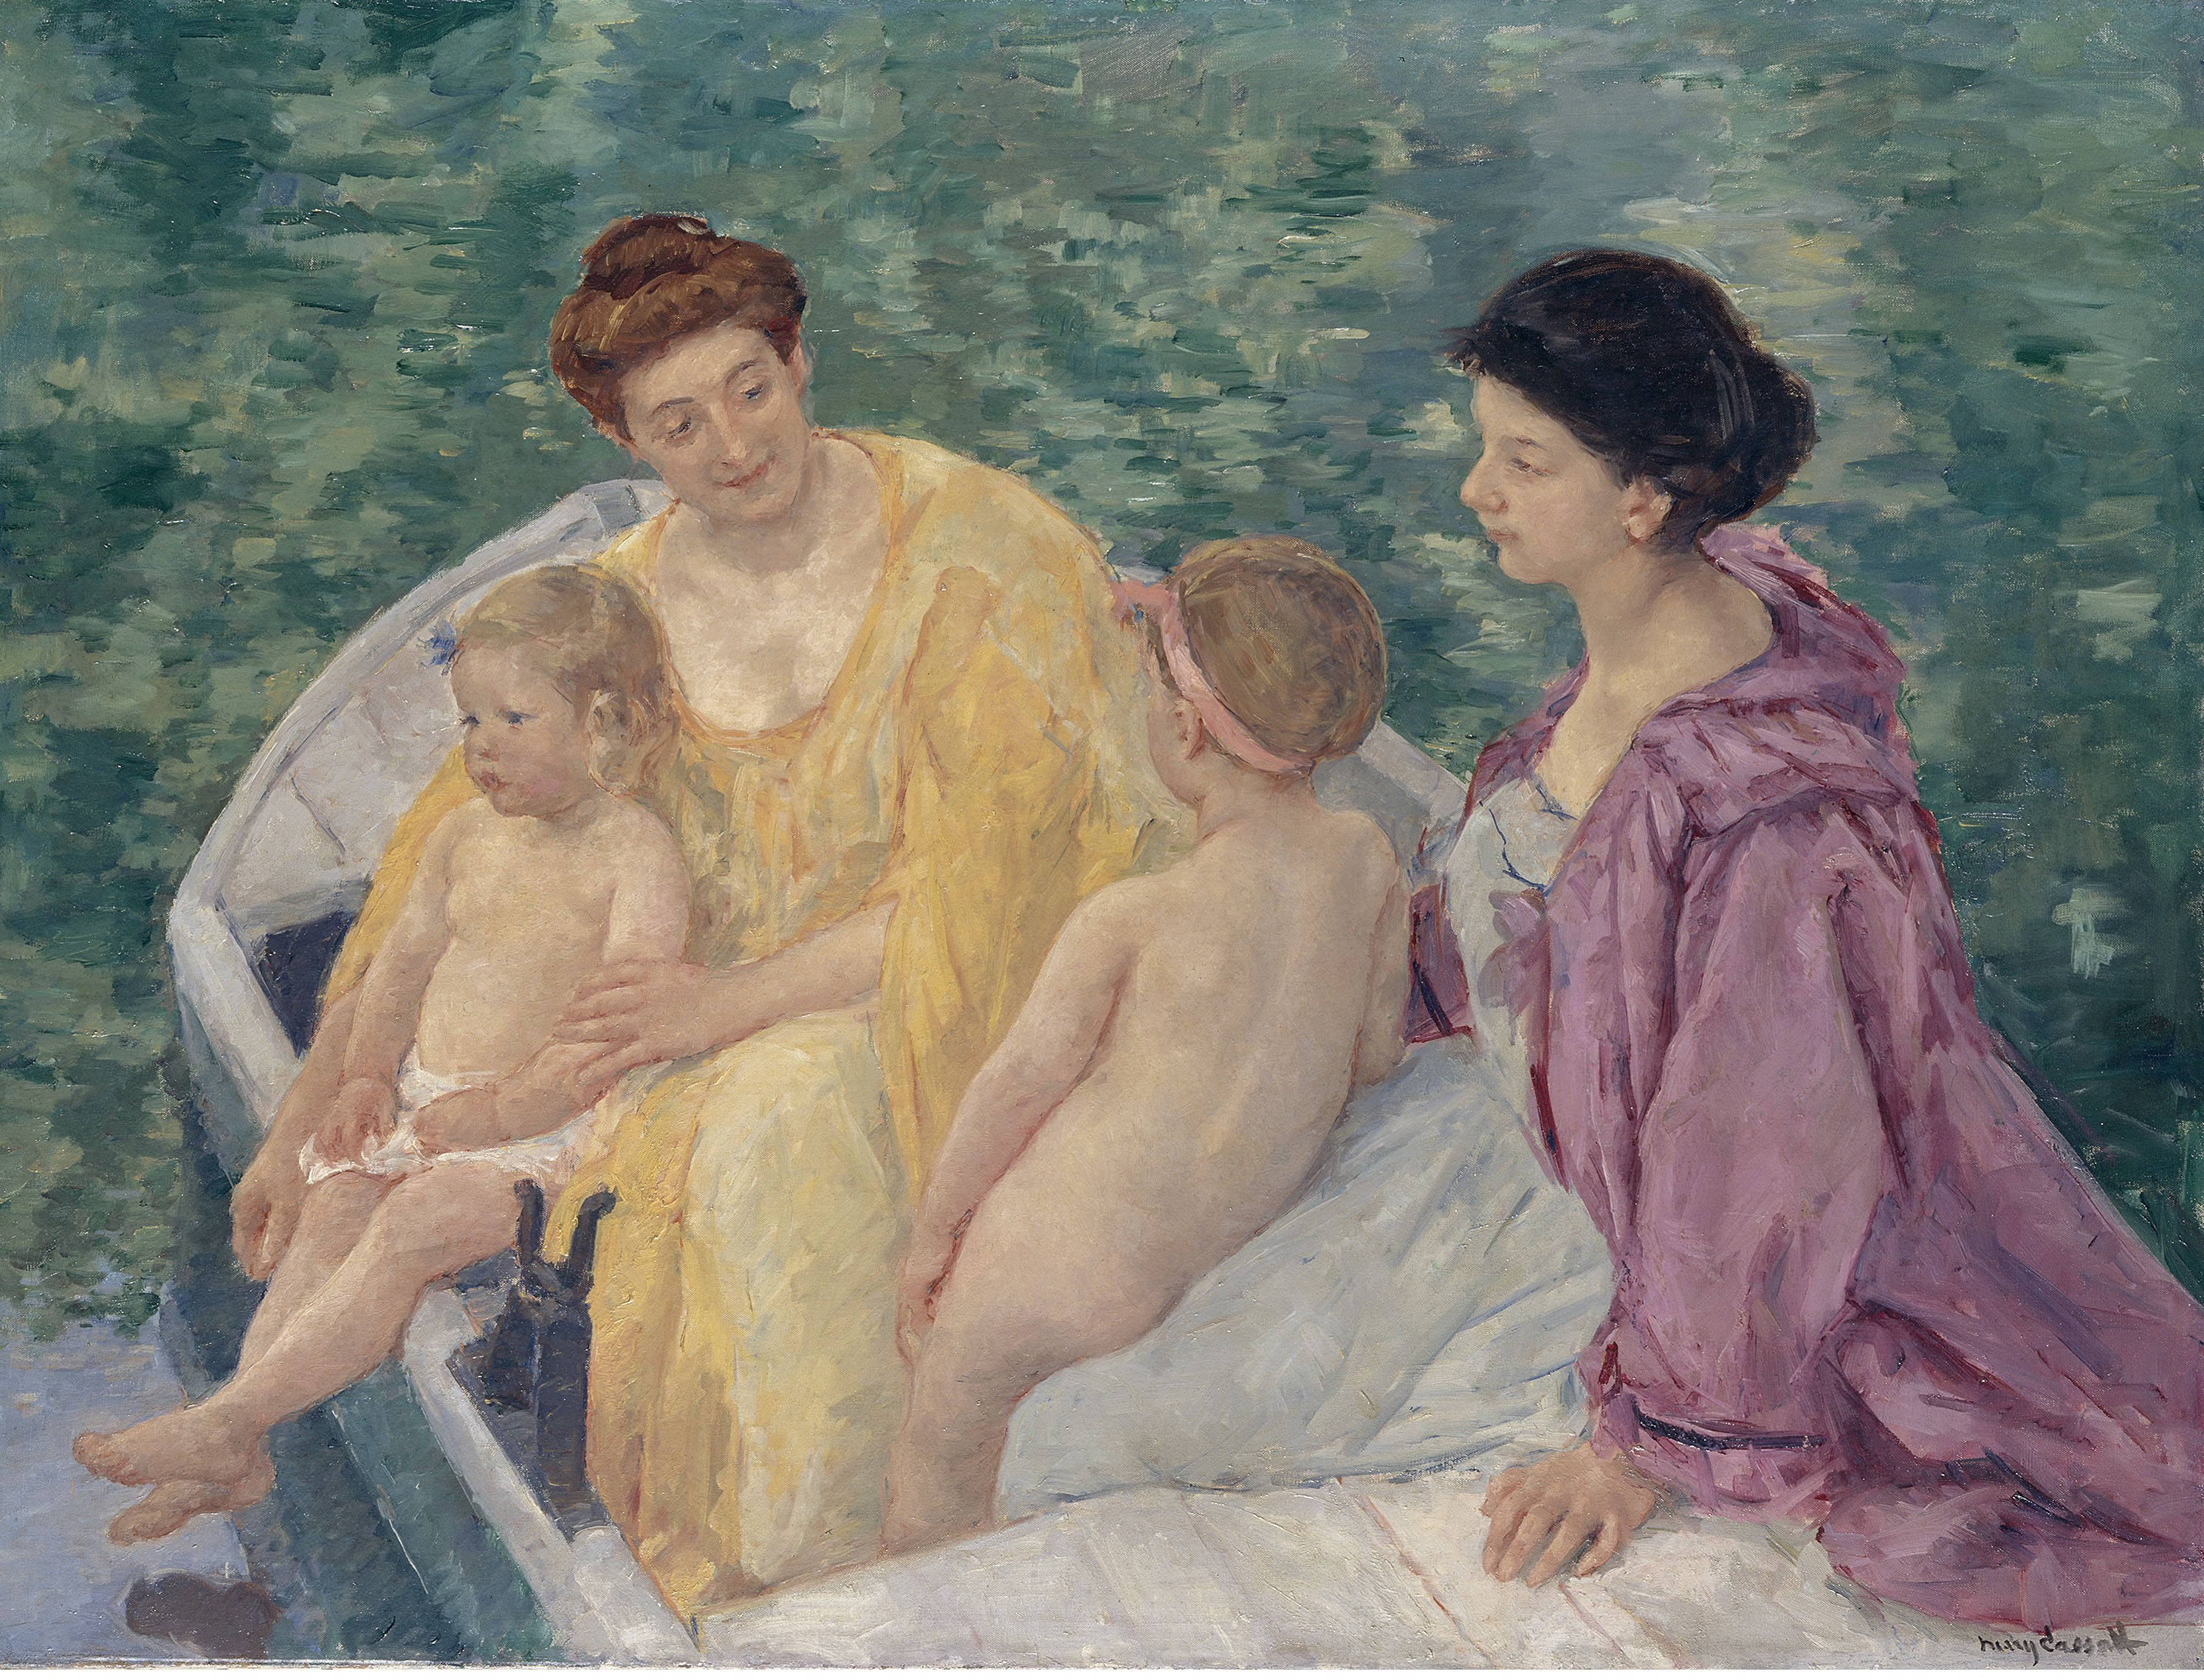 Mary Cassatt - Two mothers and their children in a boat